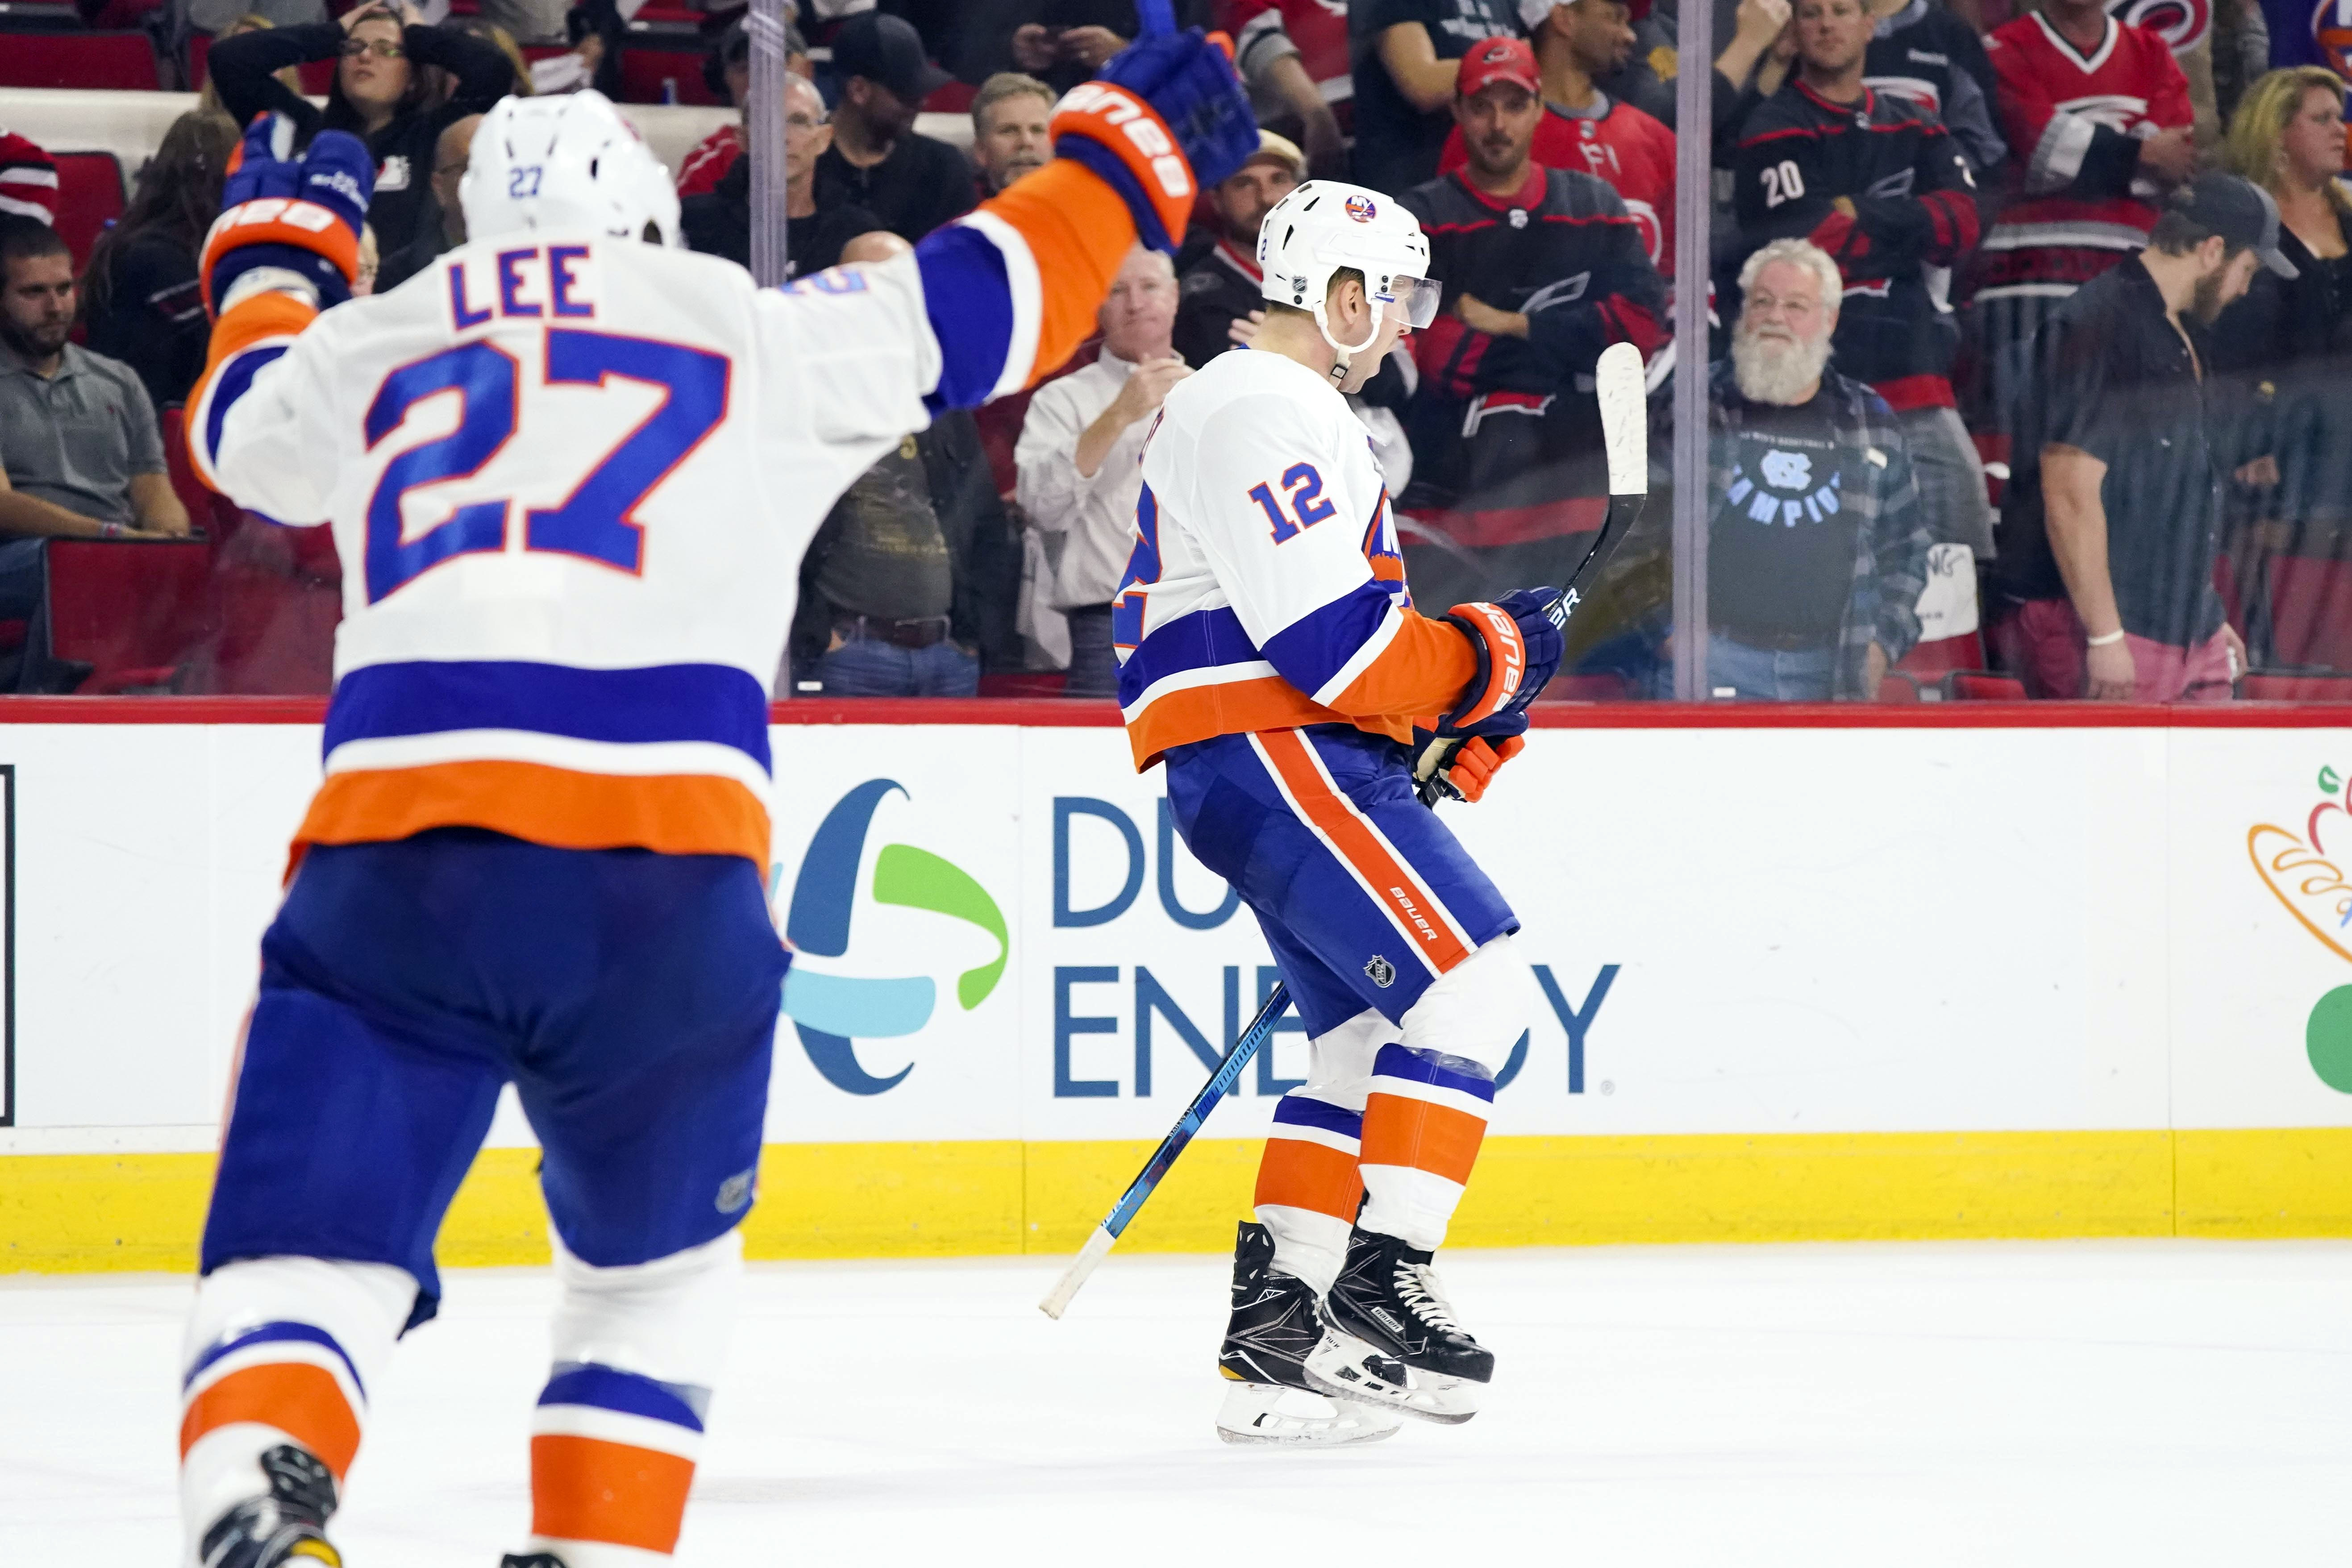 Oct 4, 2018; Raleigh, NC, USA; New York Islanders right wing Josh Bailey (12) celebrates his game winning overtime goal against the Carolina Hurricanes at PNC Arena. The New York Islanders defeated the Carolina Hurricanes 2-1 in the overtime. Mandatory Credit: James Guillory-USA TODAY Sports